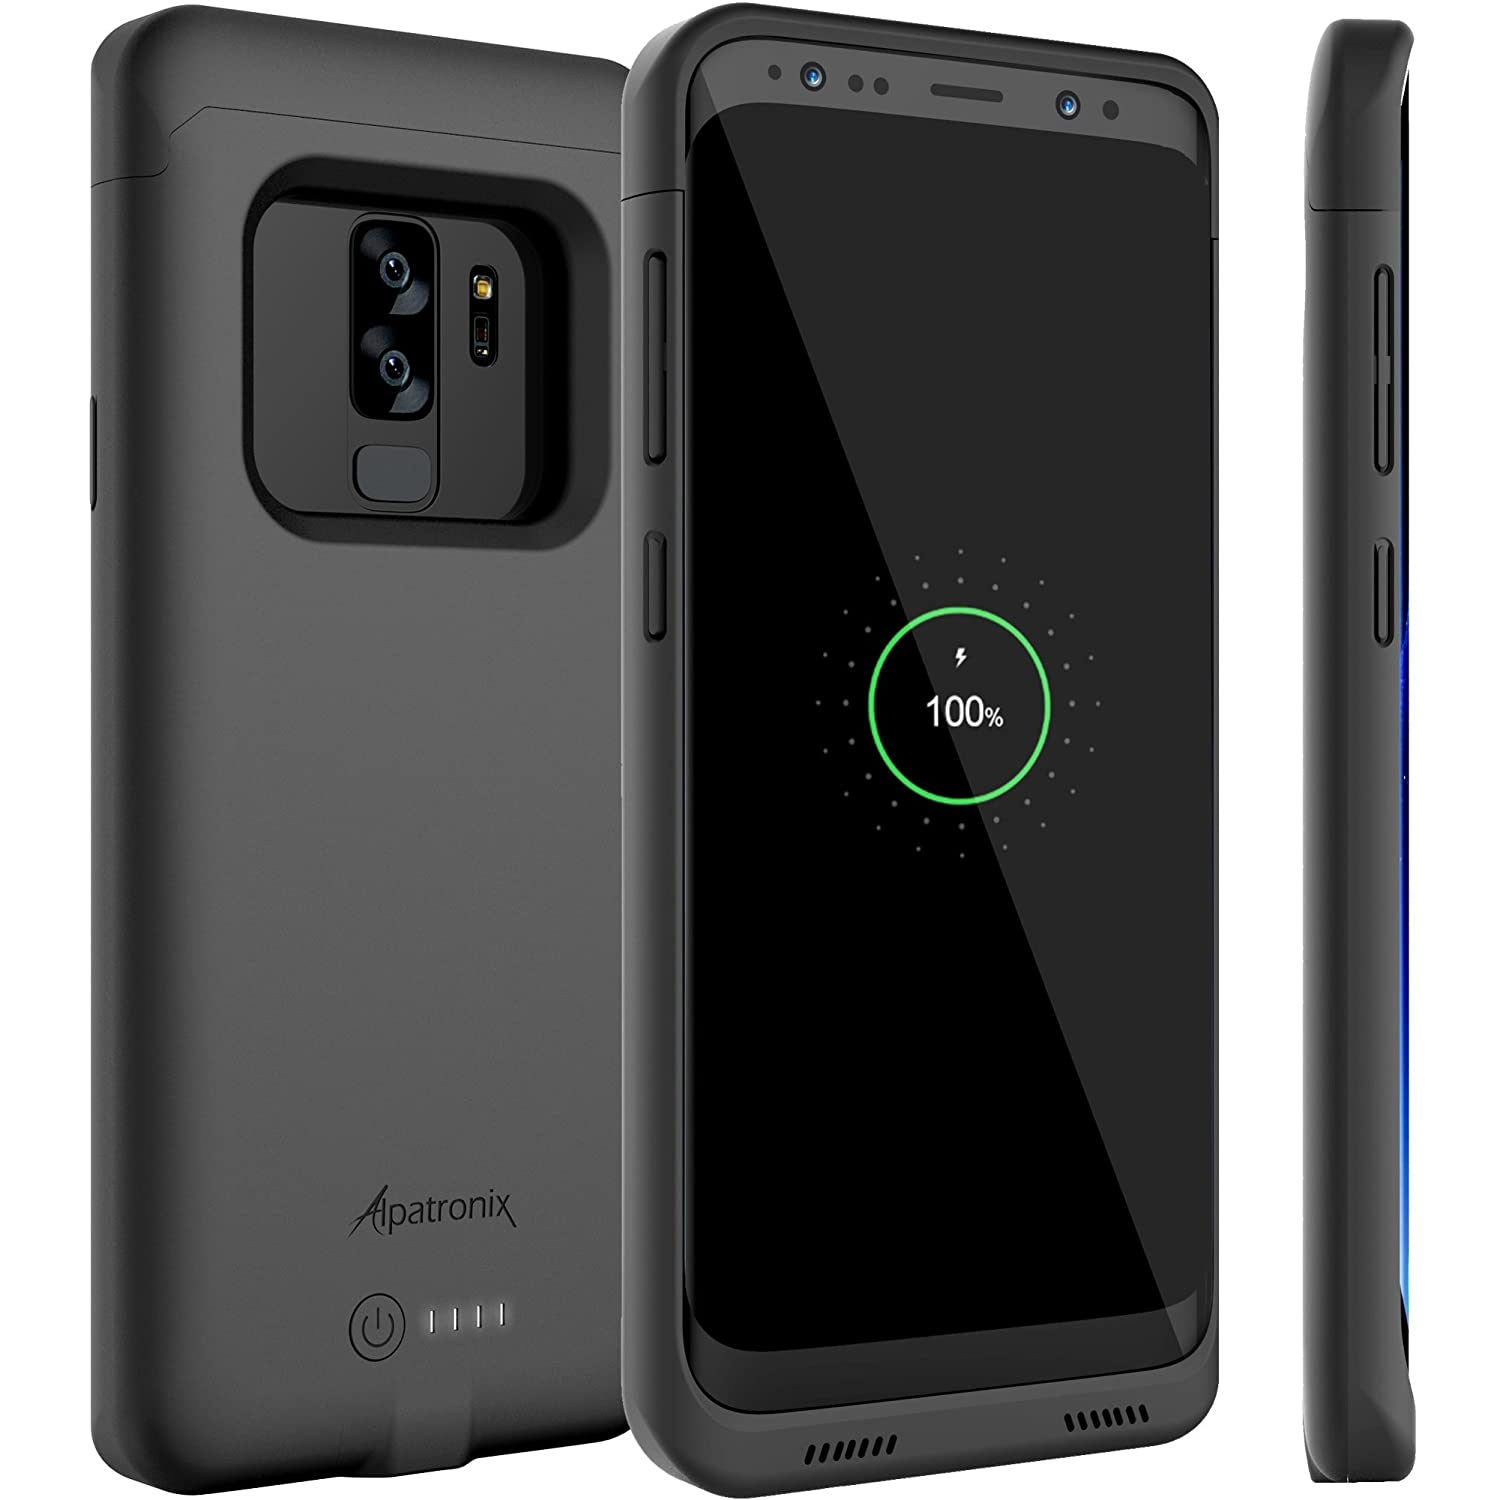 Galaxy S9 Plus Battery Case with Qi Wireless Charging Compatibility, Alpatronix BX440plus 6.2-inch 4600mAh Slim Rechargeable Protective Portable Backup Charger for Samsung S9+ [Android 8.0] - Black